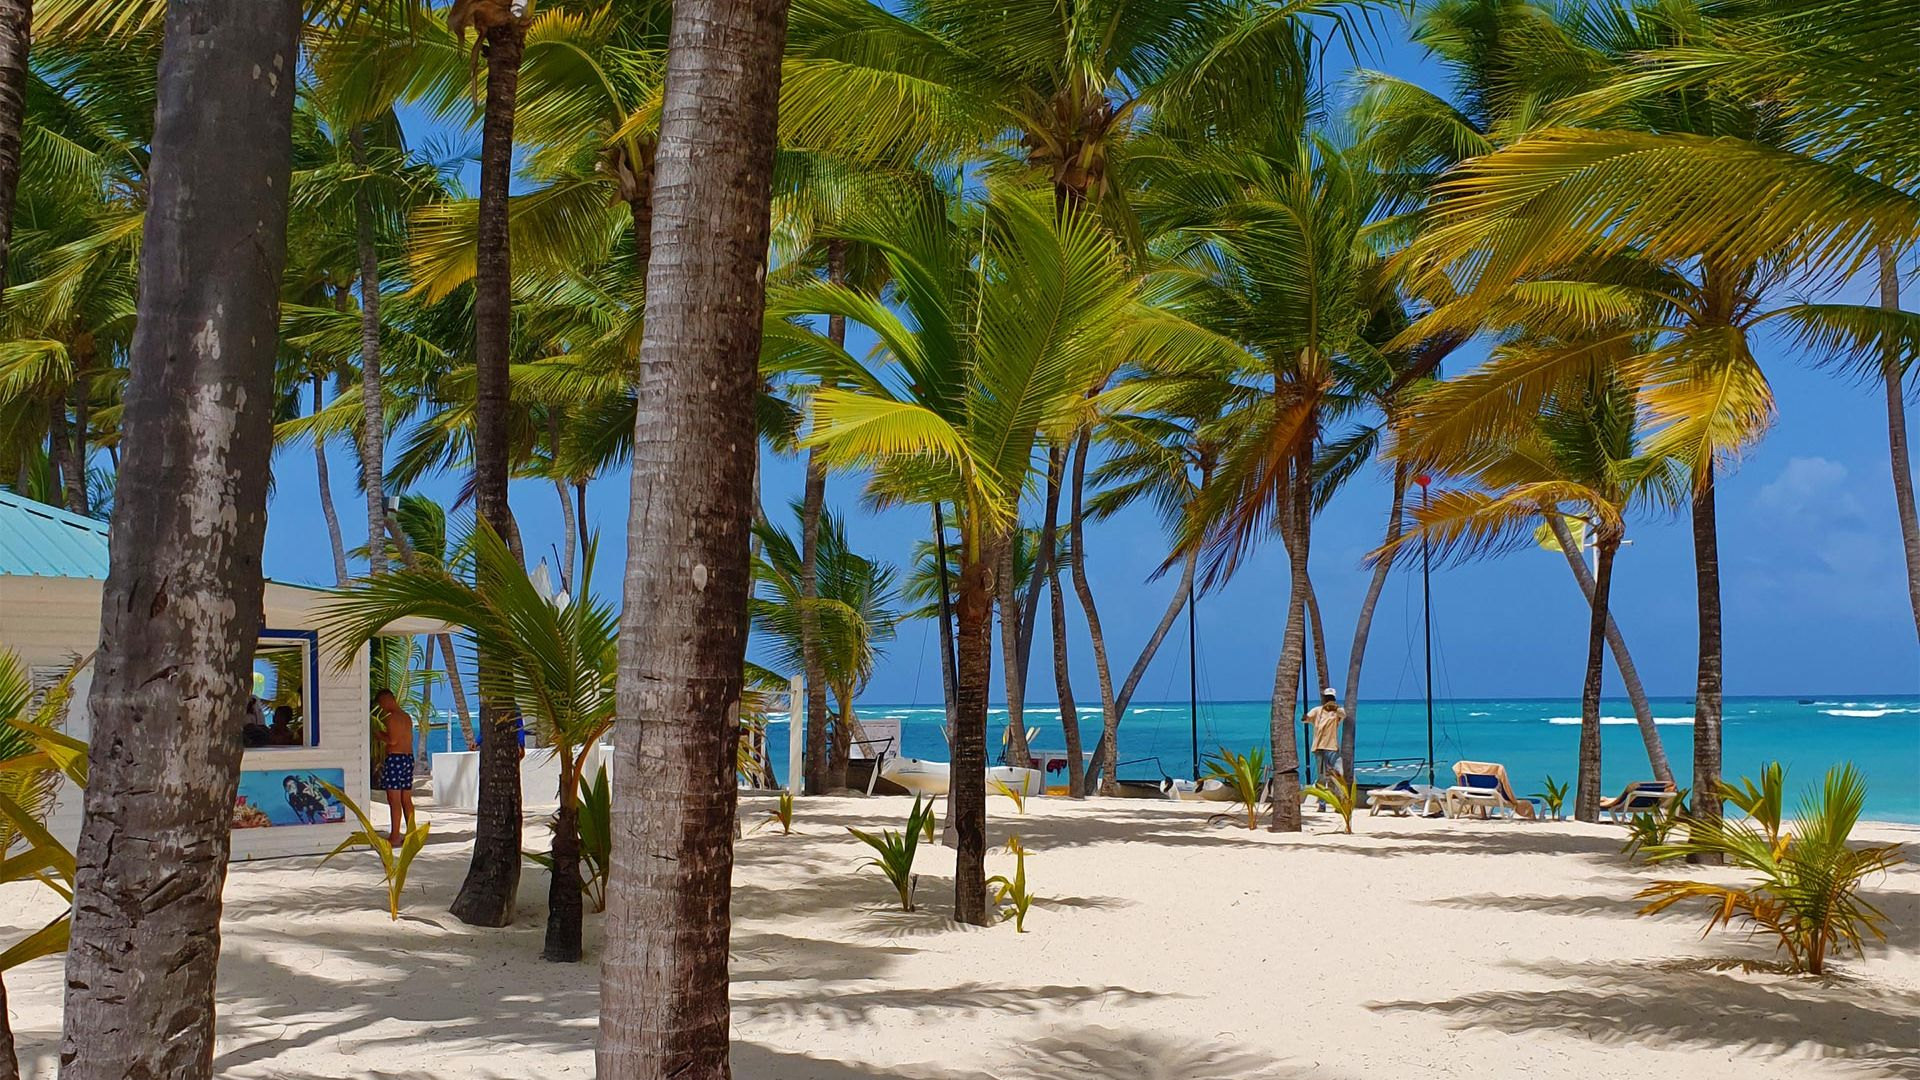 Sejur charter Punta Cana, 9 zile - decembrie 2021